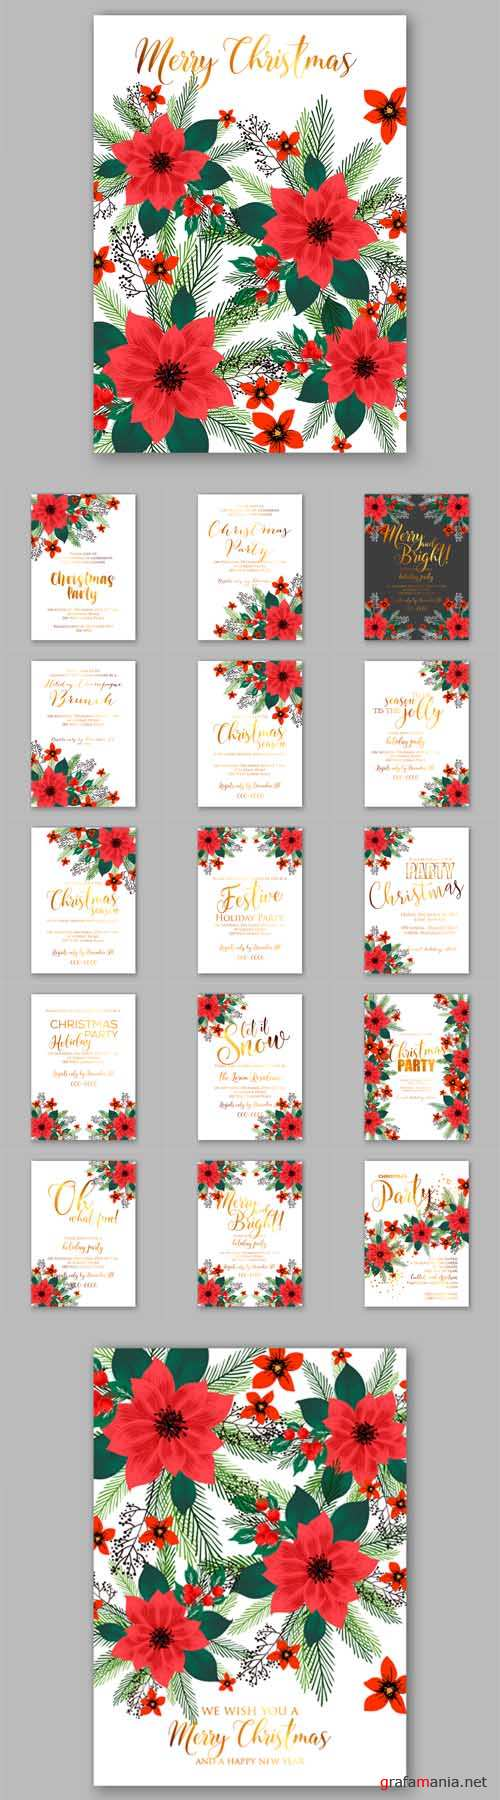 Vector Merry Christmas Party Invitations with Winter Wreath